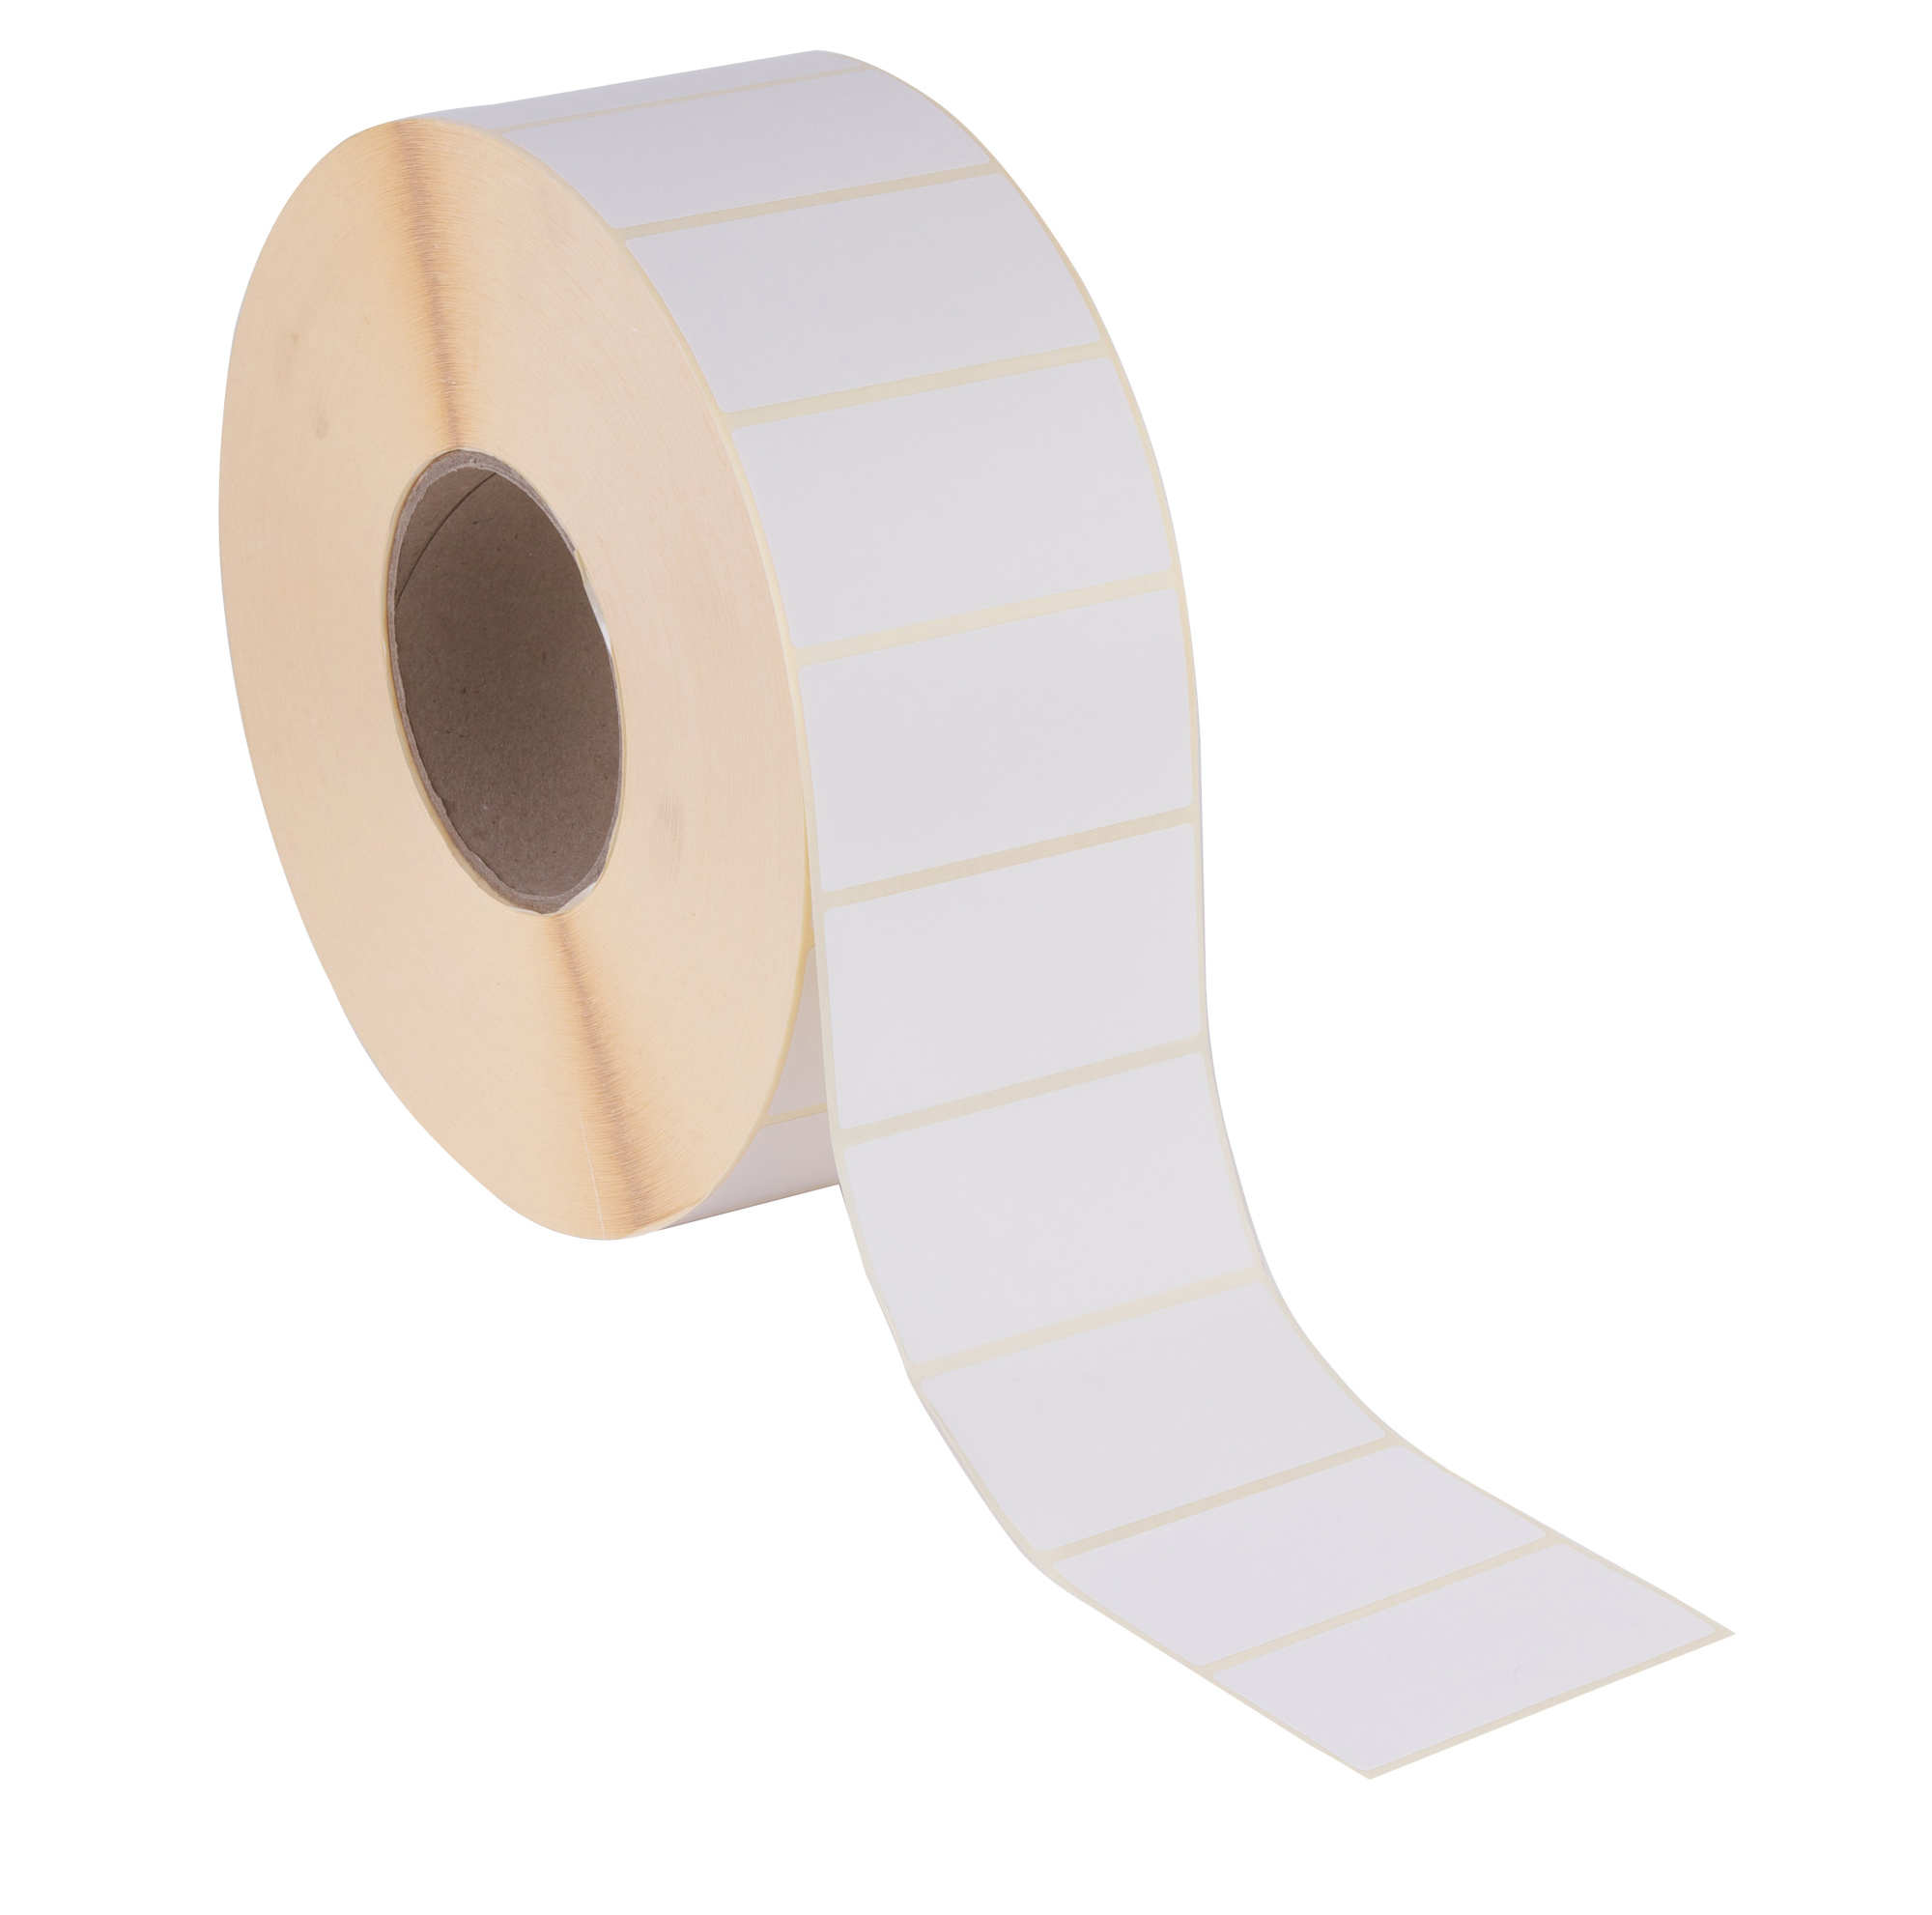 38 X 38 Plain White Thermal Direct Printer Labels